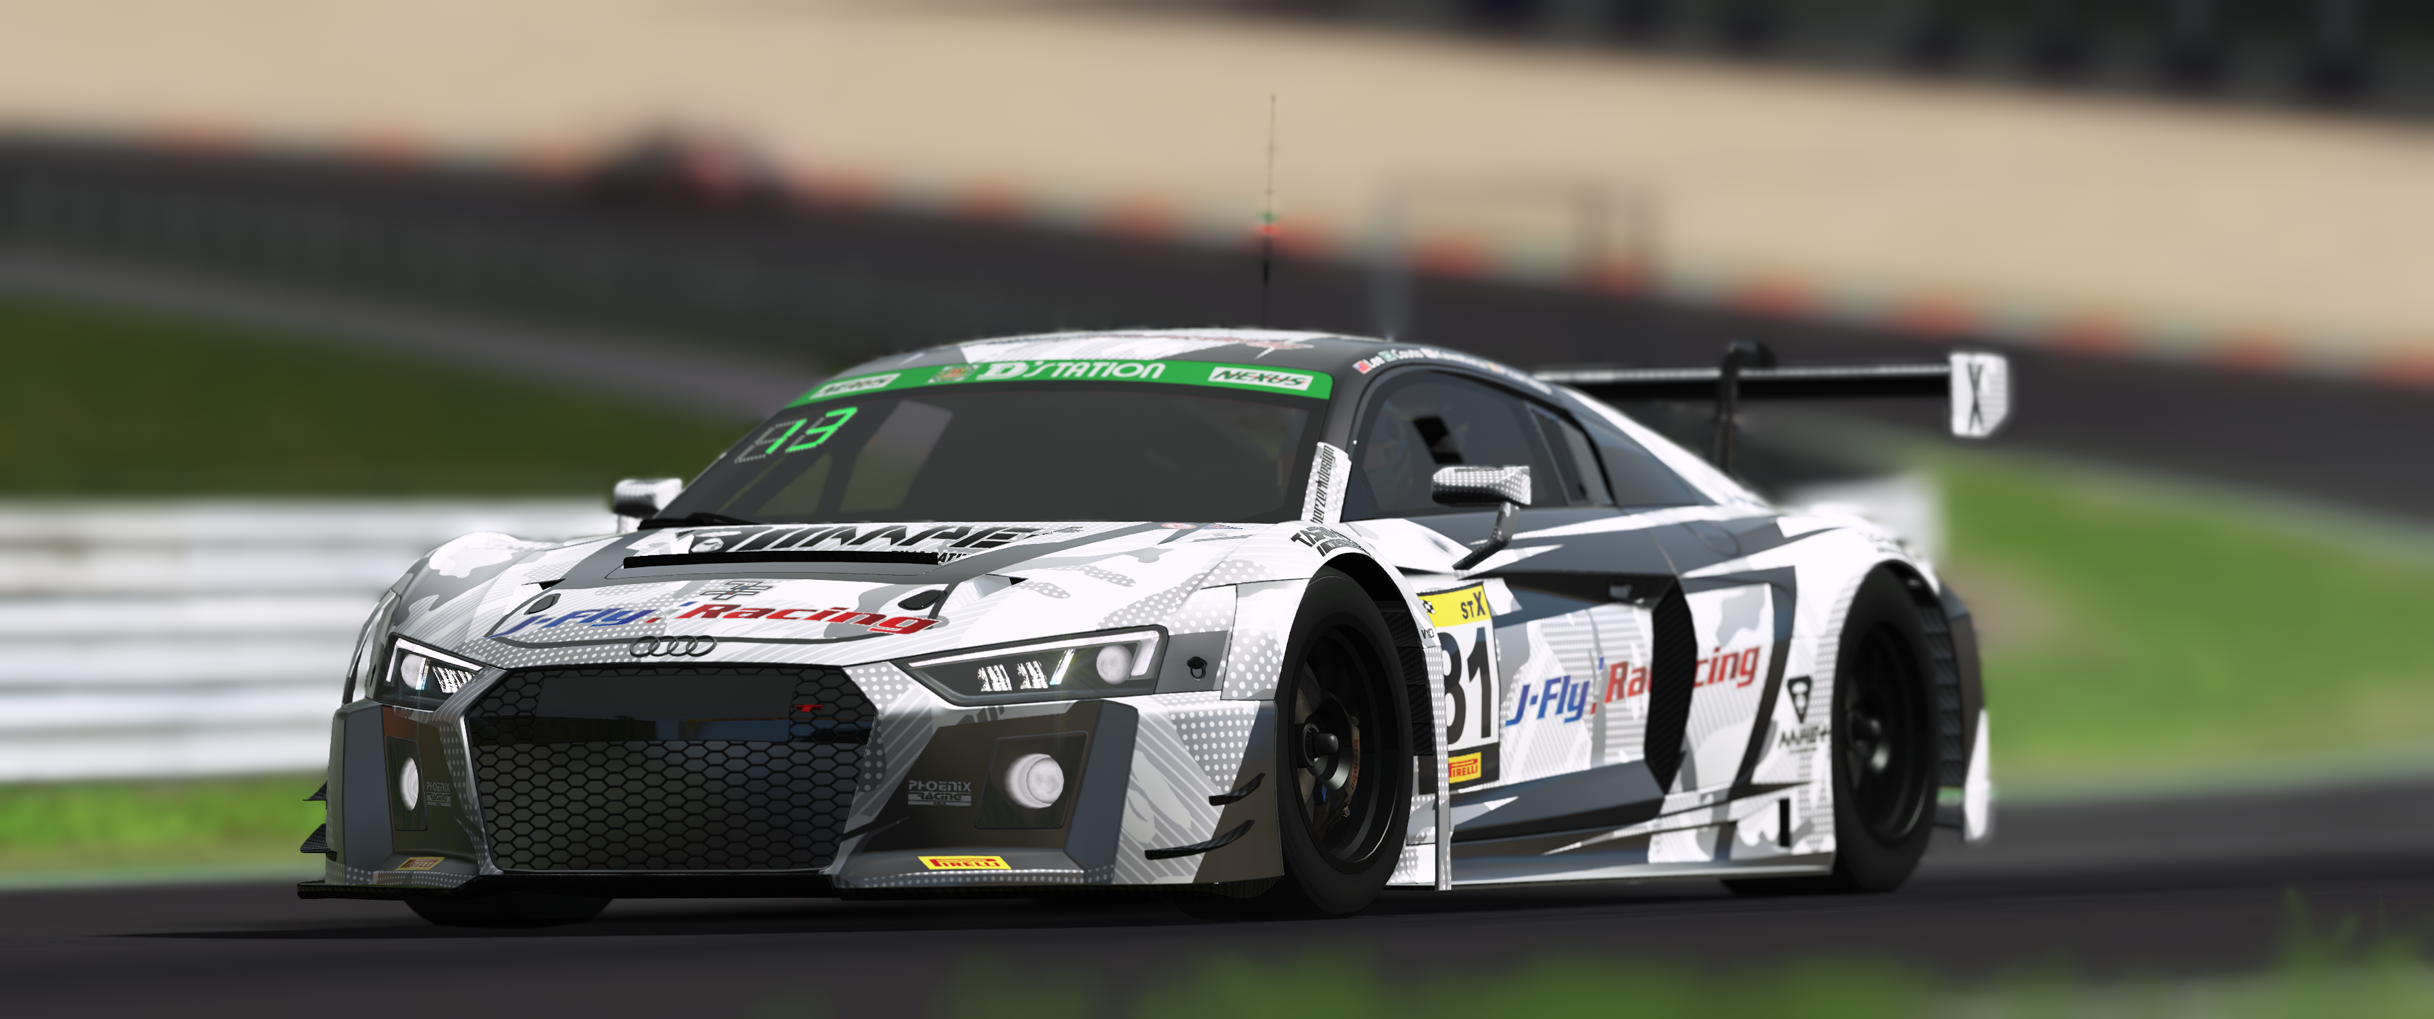 rFactor2-2019-02-21-23-46-46-01.png